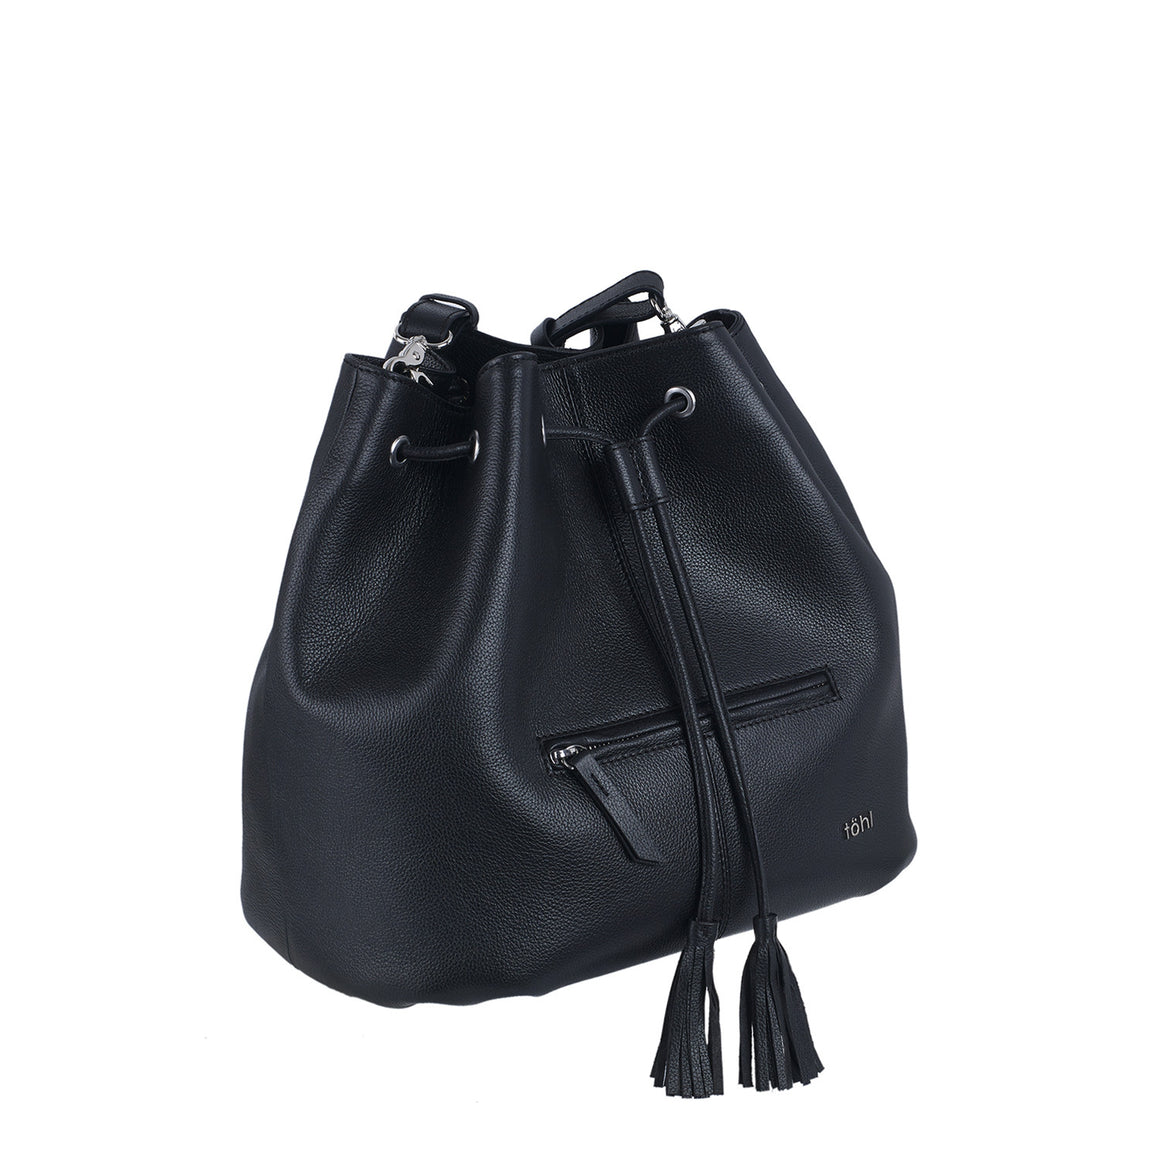 BP 0002 - TOHL MONTAUK WOMEN'S DRAWCORD BUCKET BAG - CHARCOAL BLACK